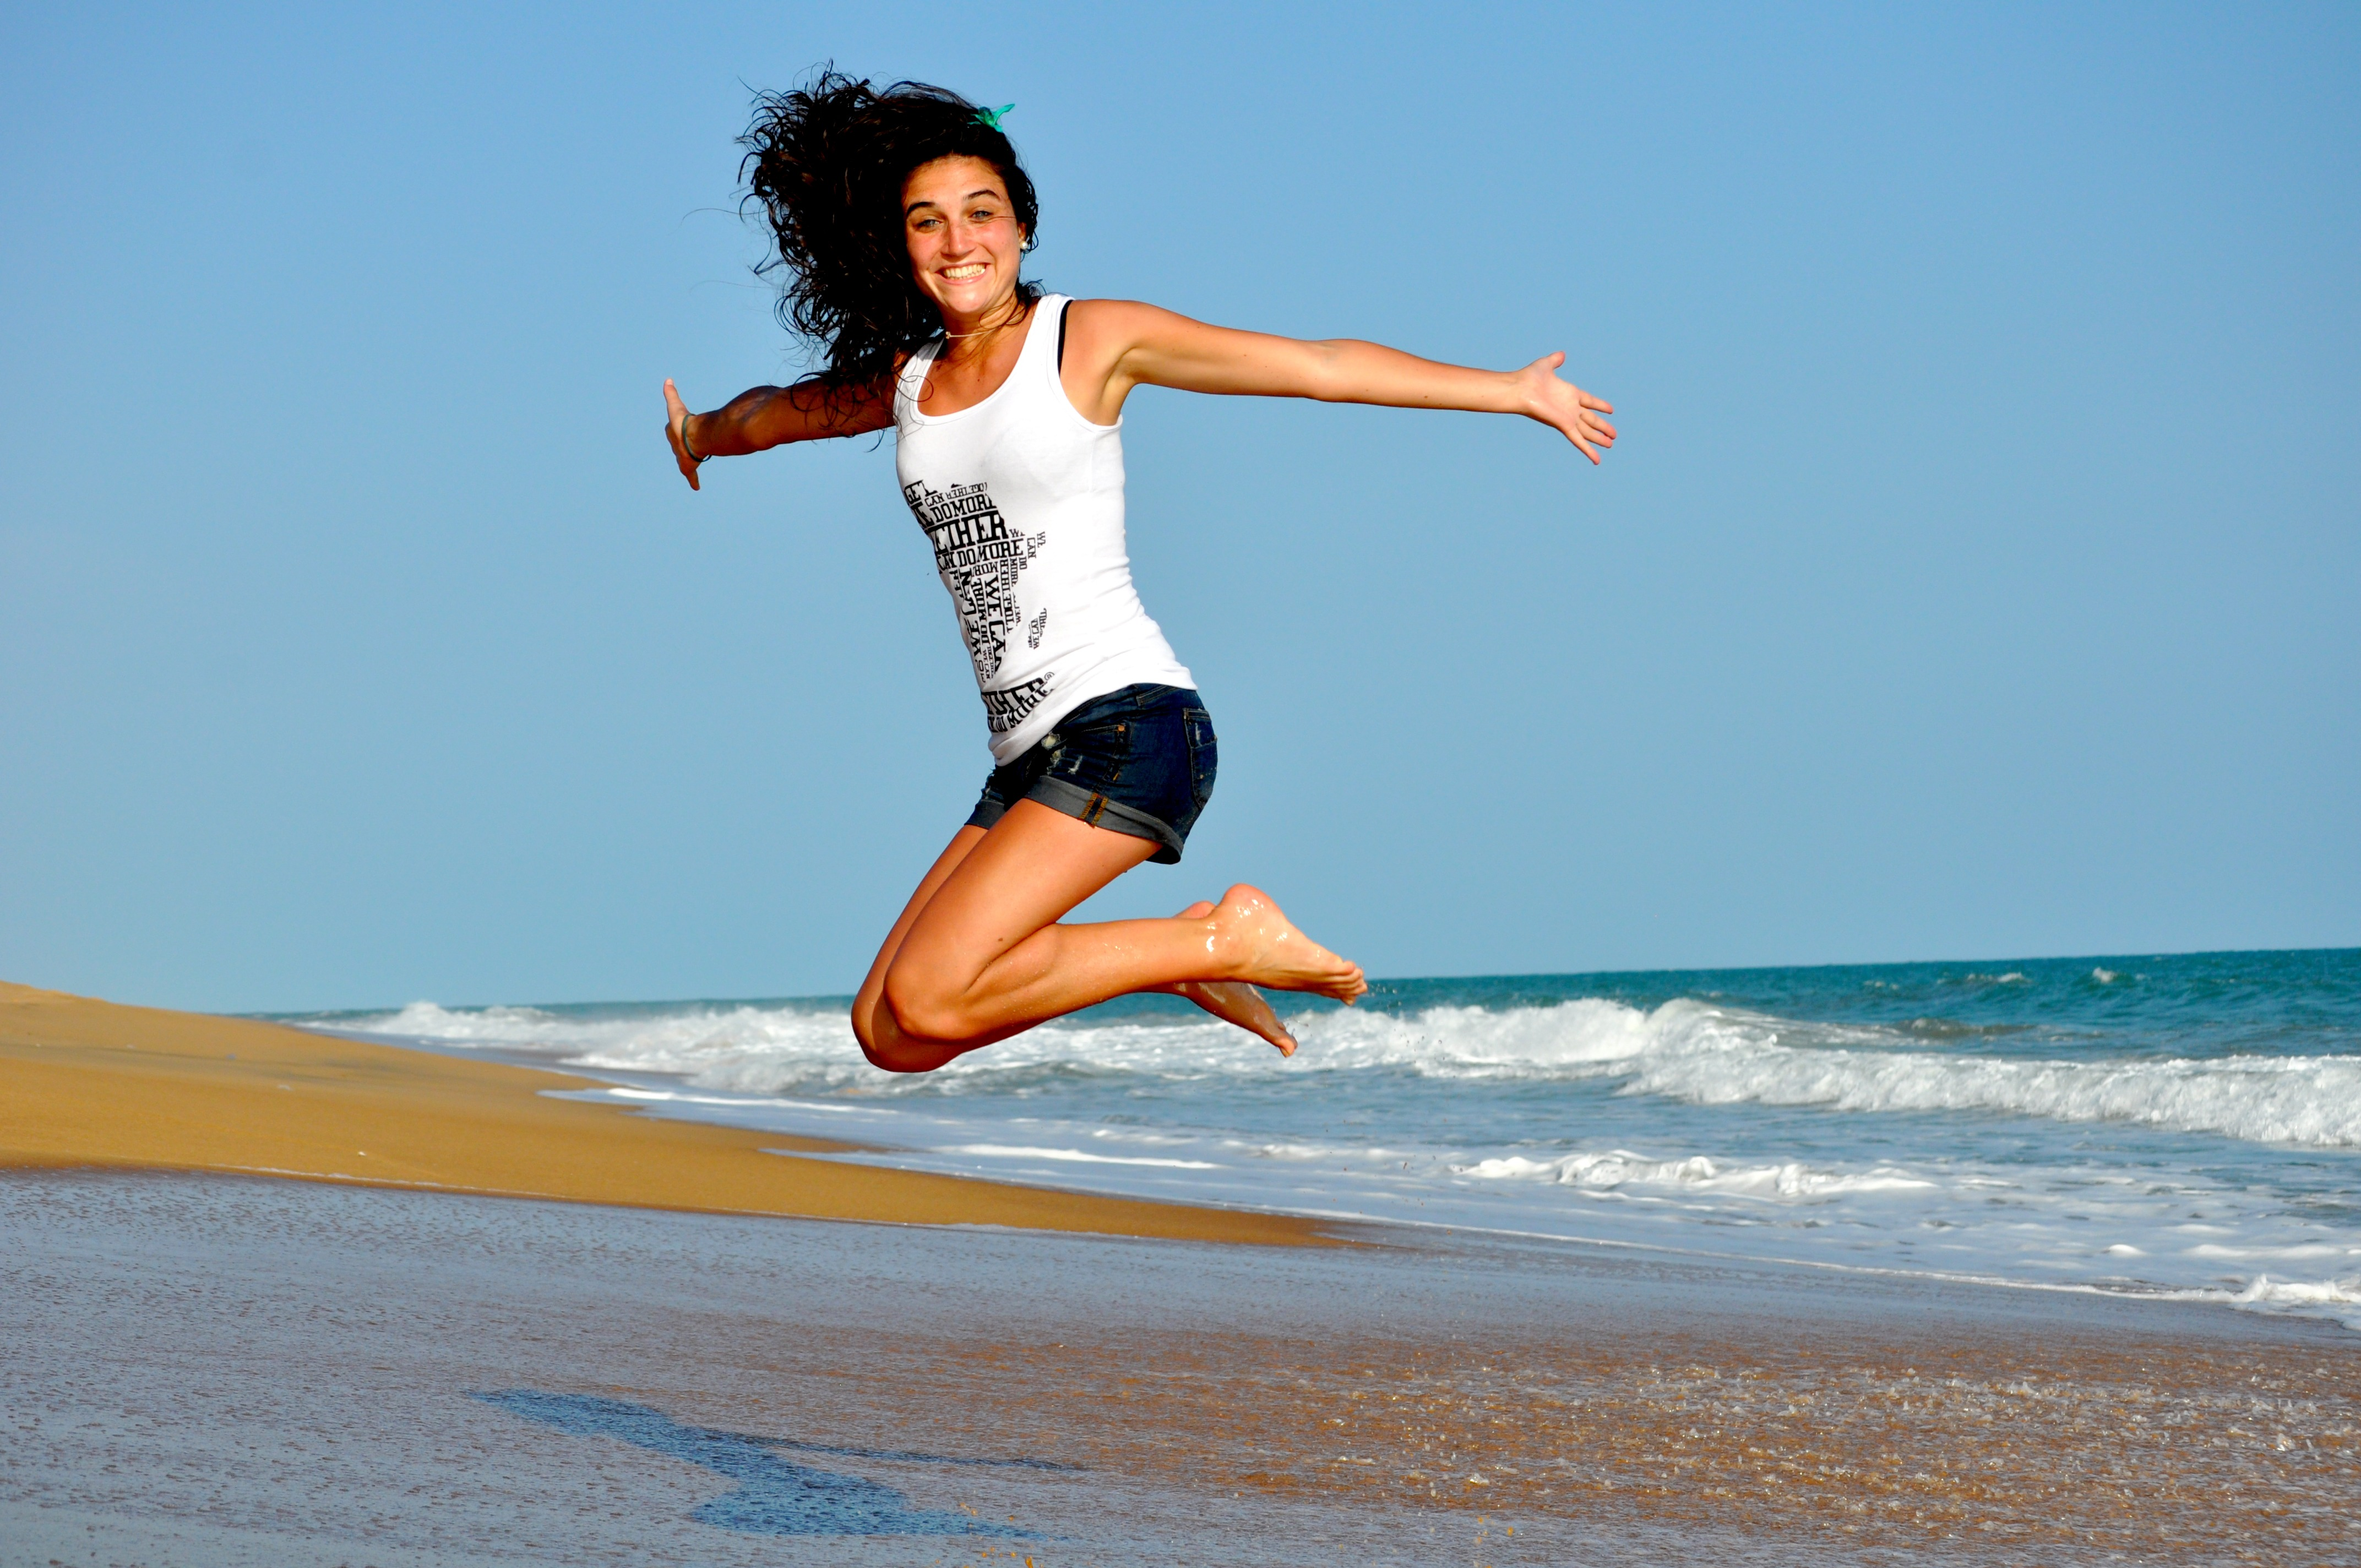 Jumping Fitness Woman In White Tanktop Jump Over Beach Sand Free Stock Photo